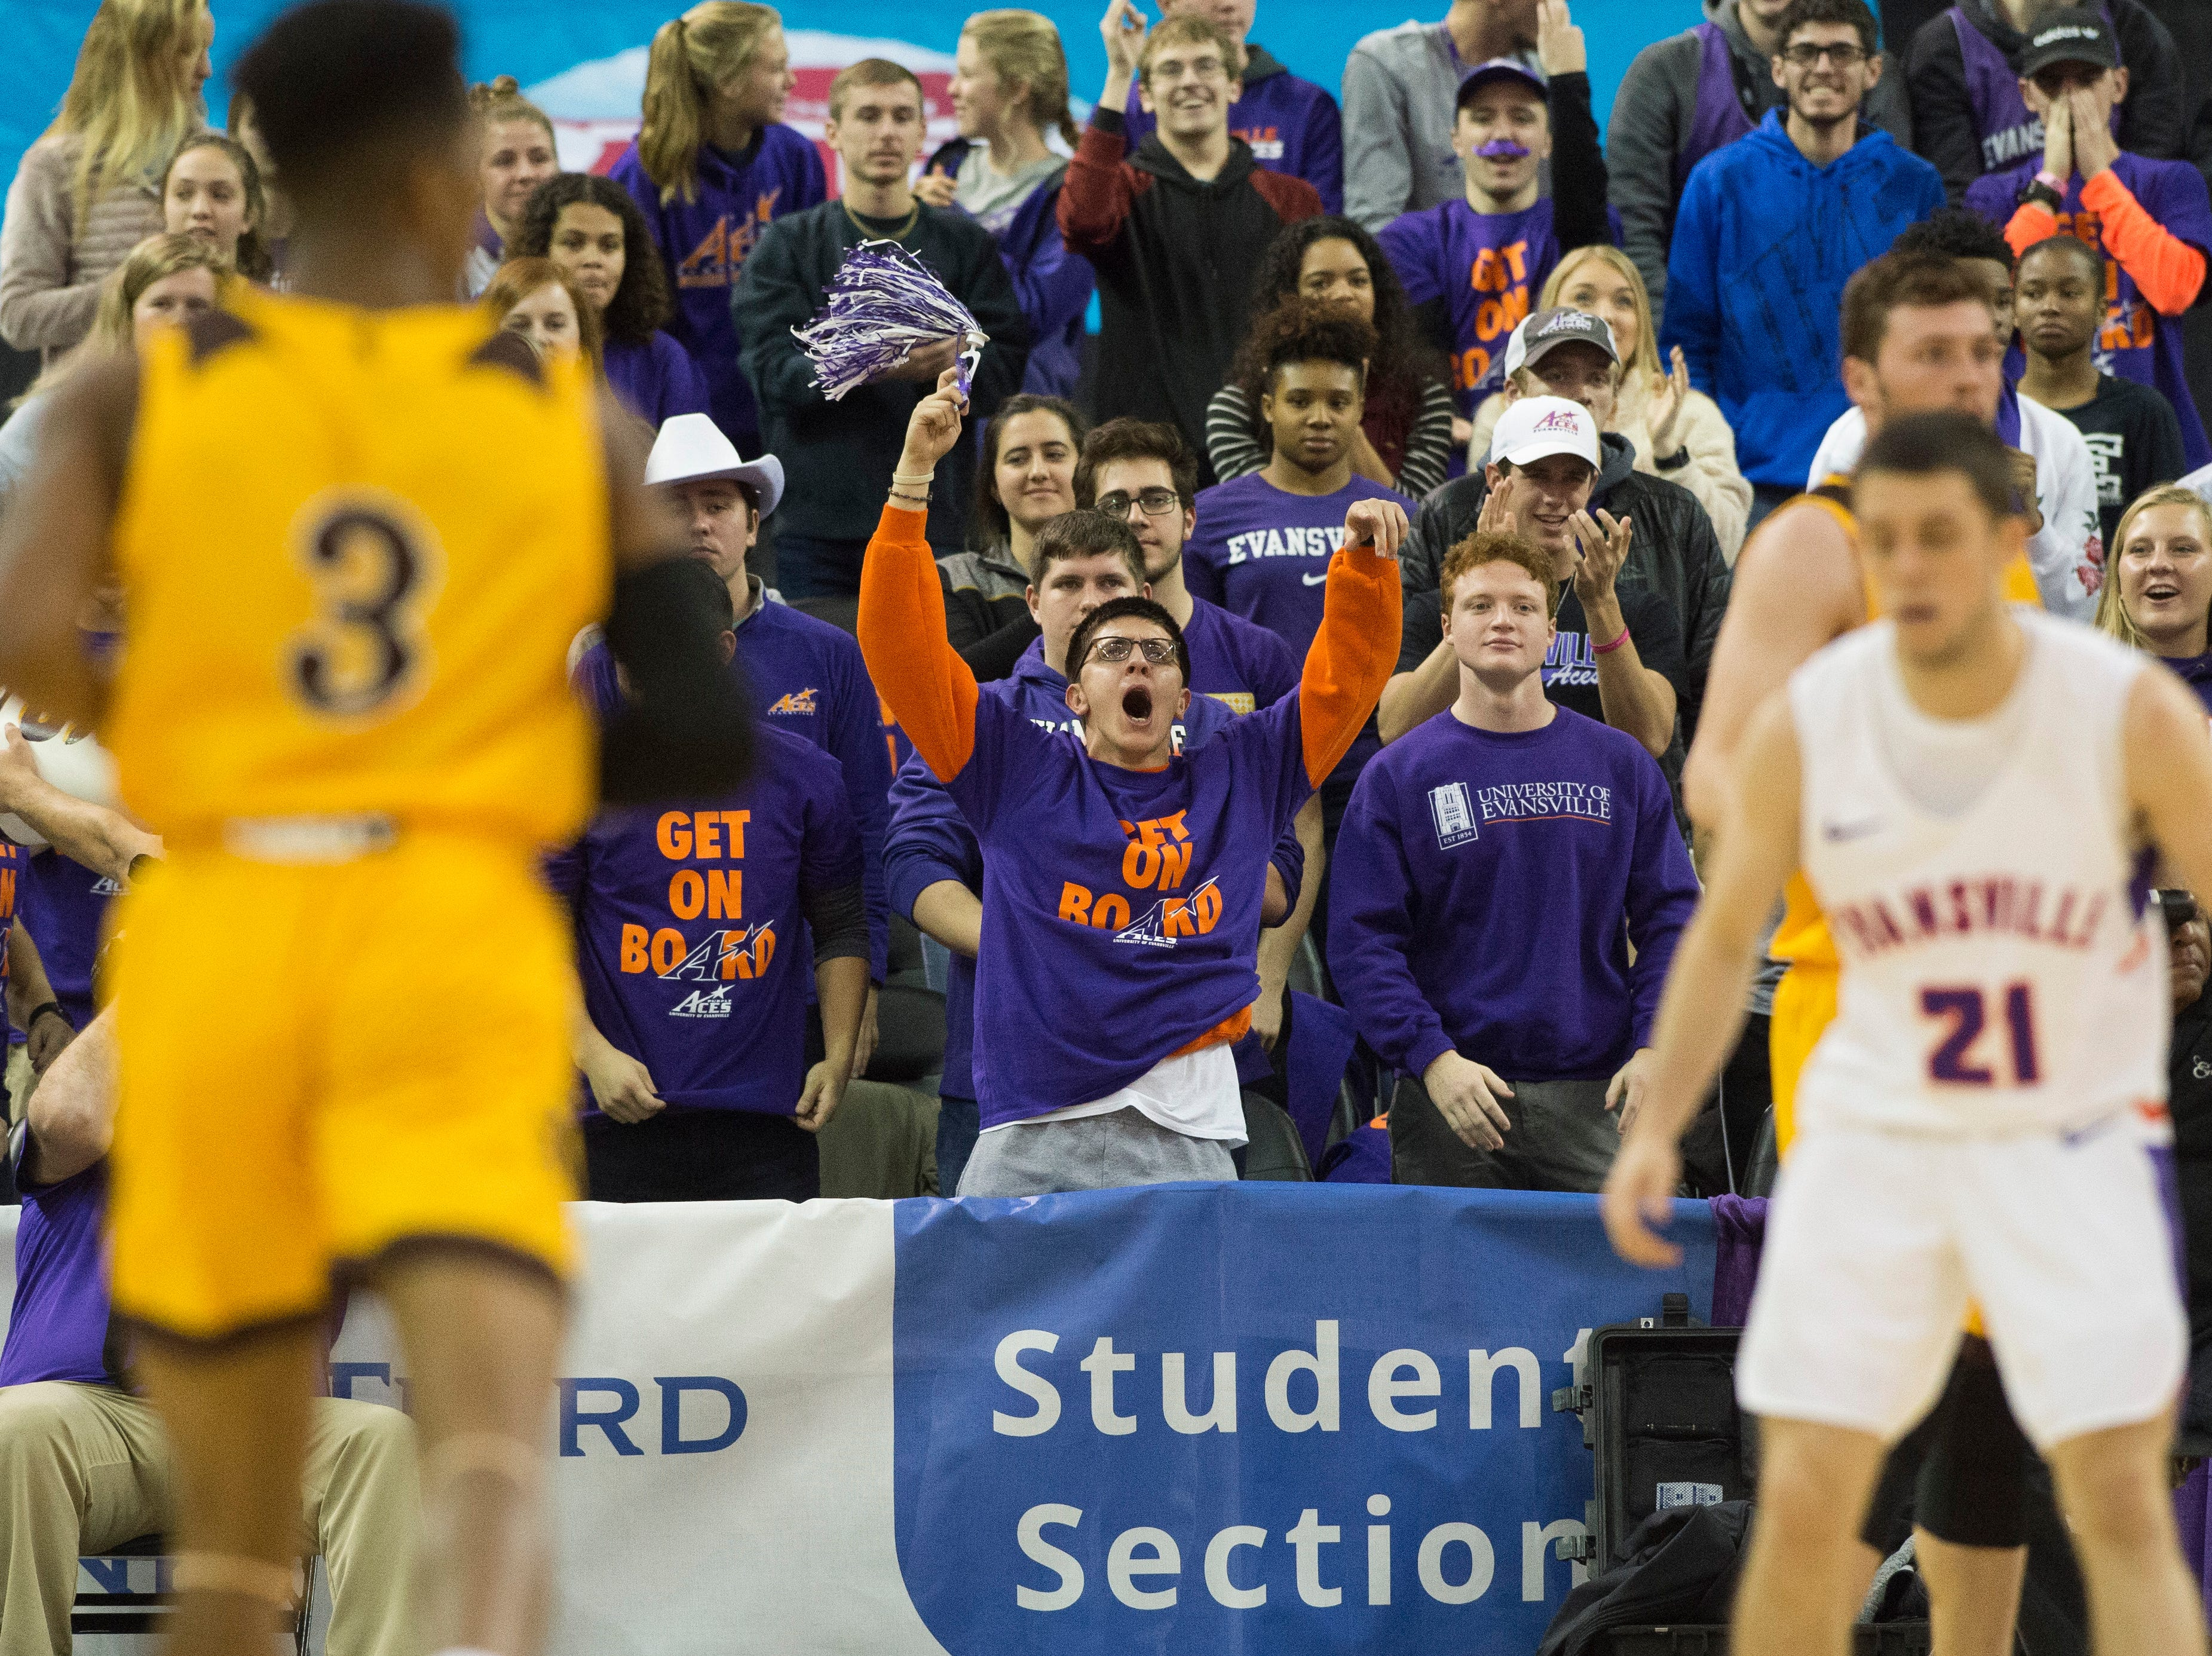 The student section cheers in the second half during the UE vs Wyoming game at the Ford Center Wednesday, Nov. 28, 2018. UE won 86-76.